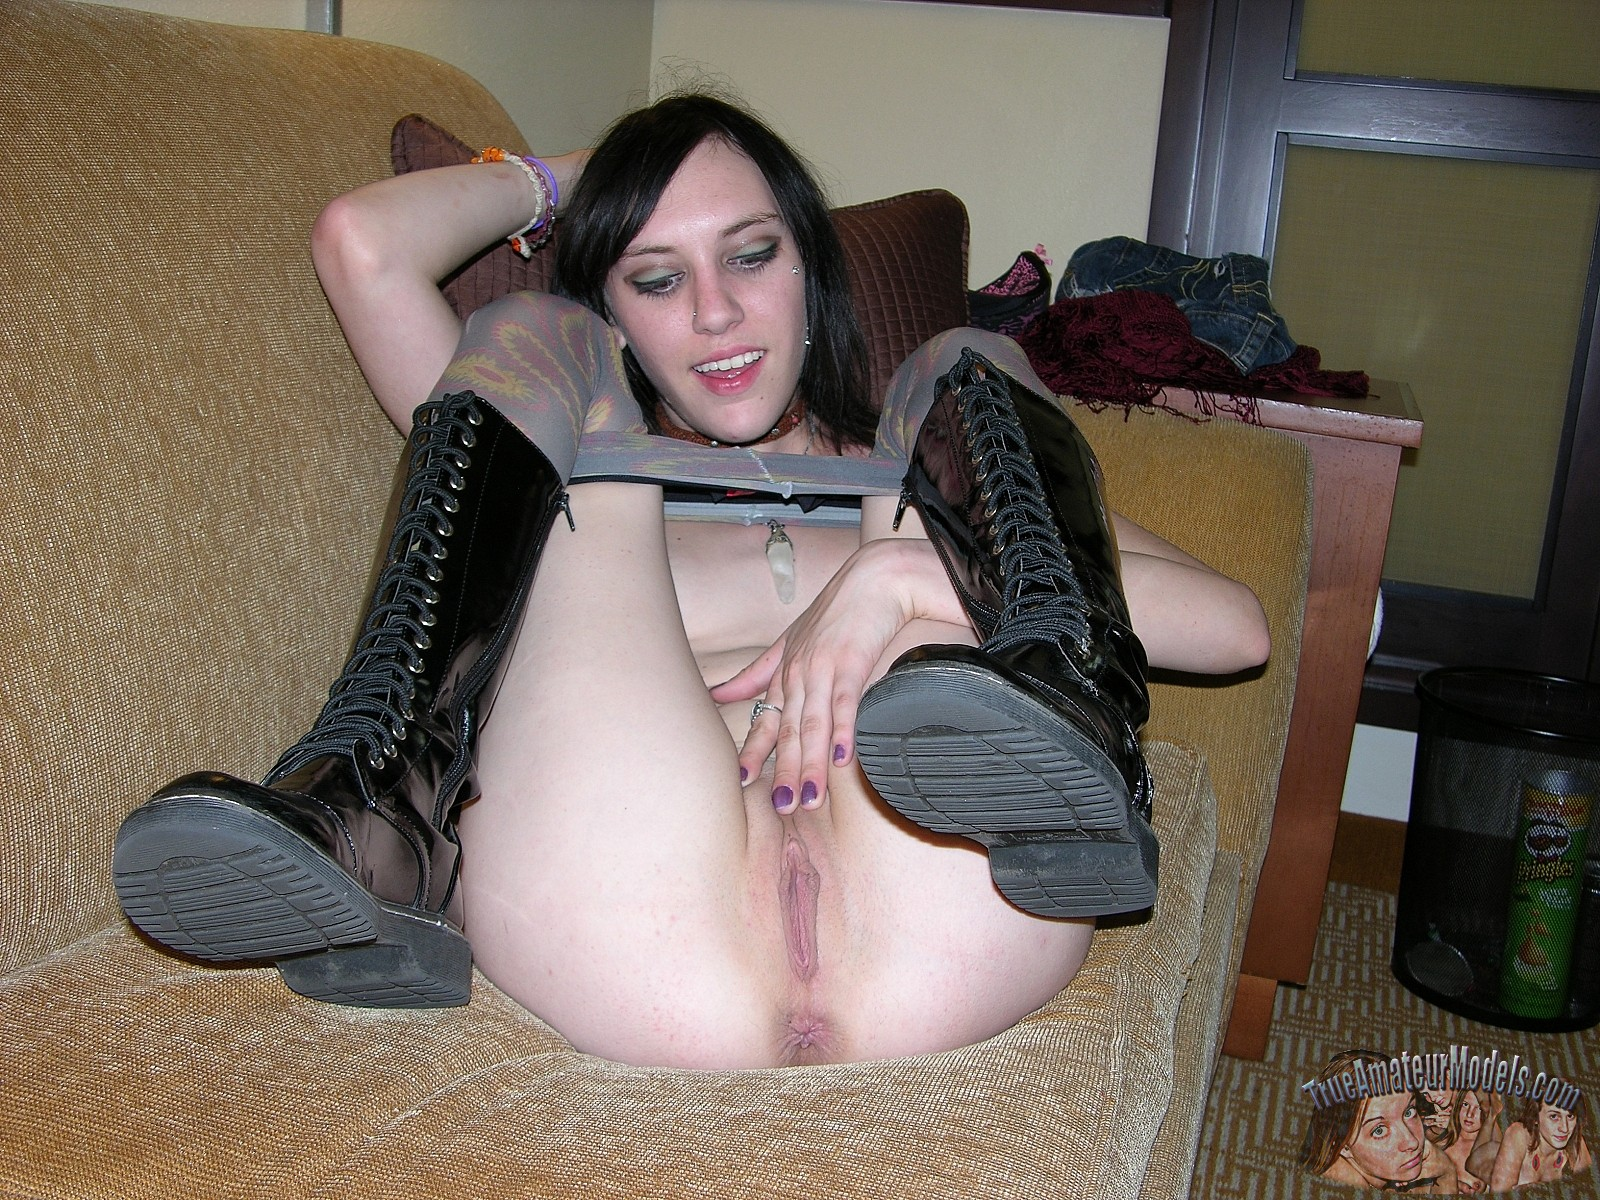 Goth metal girls nude